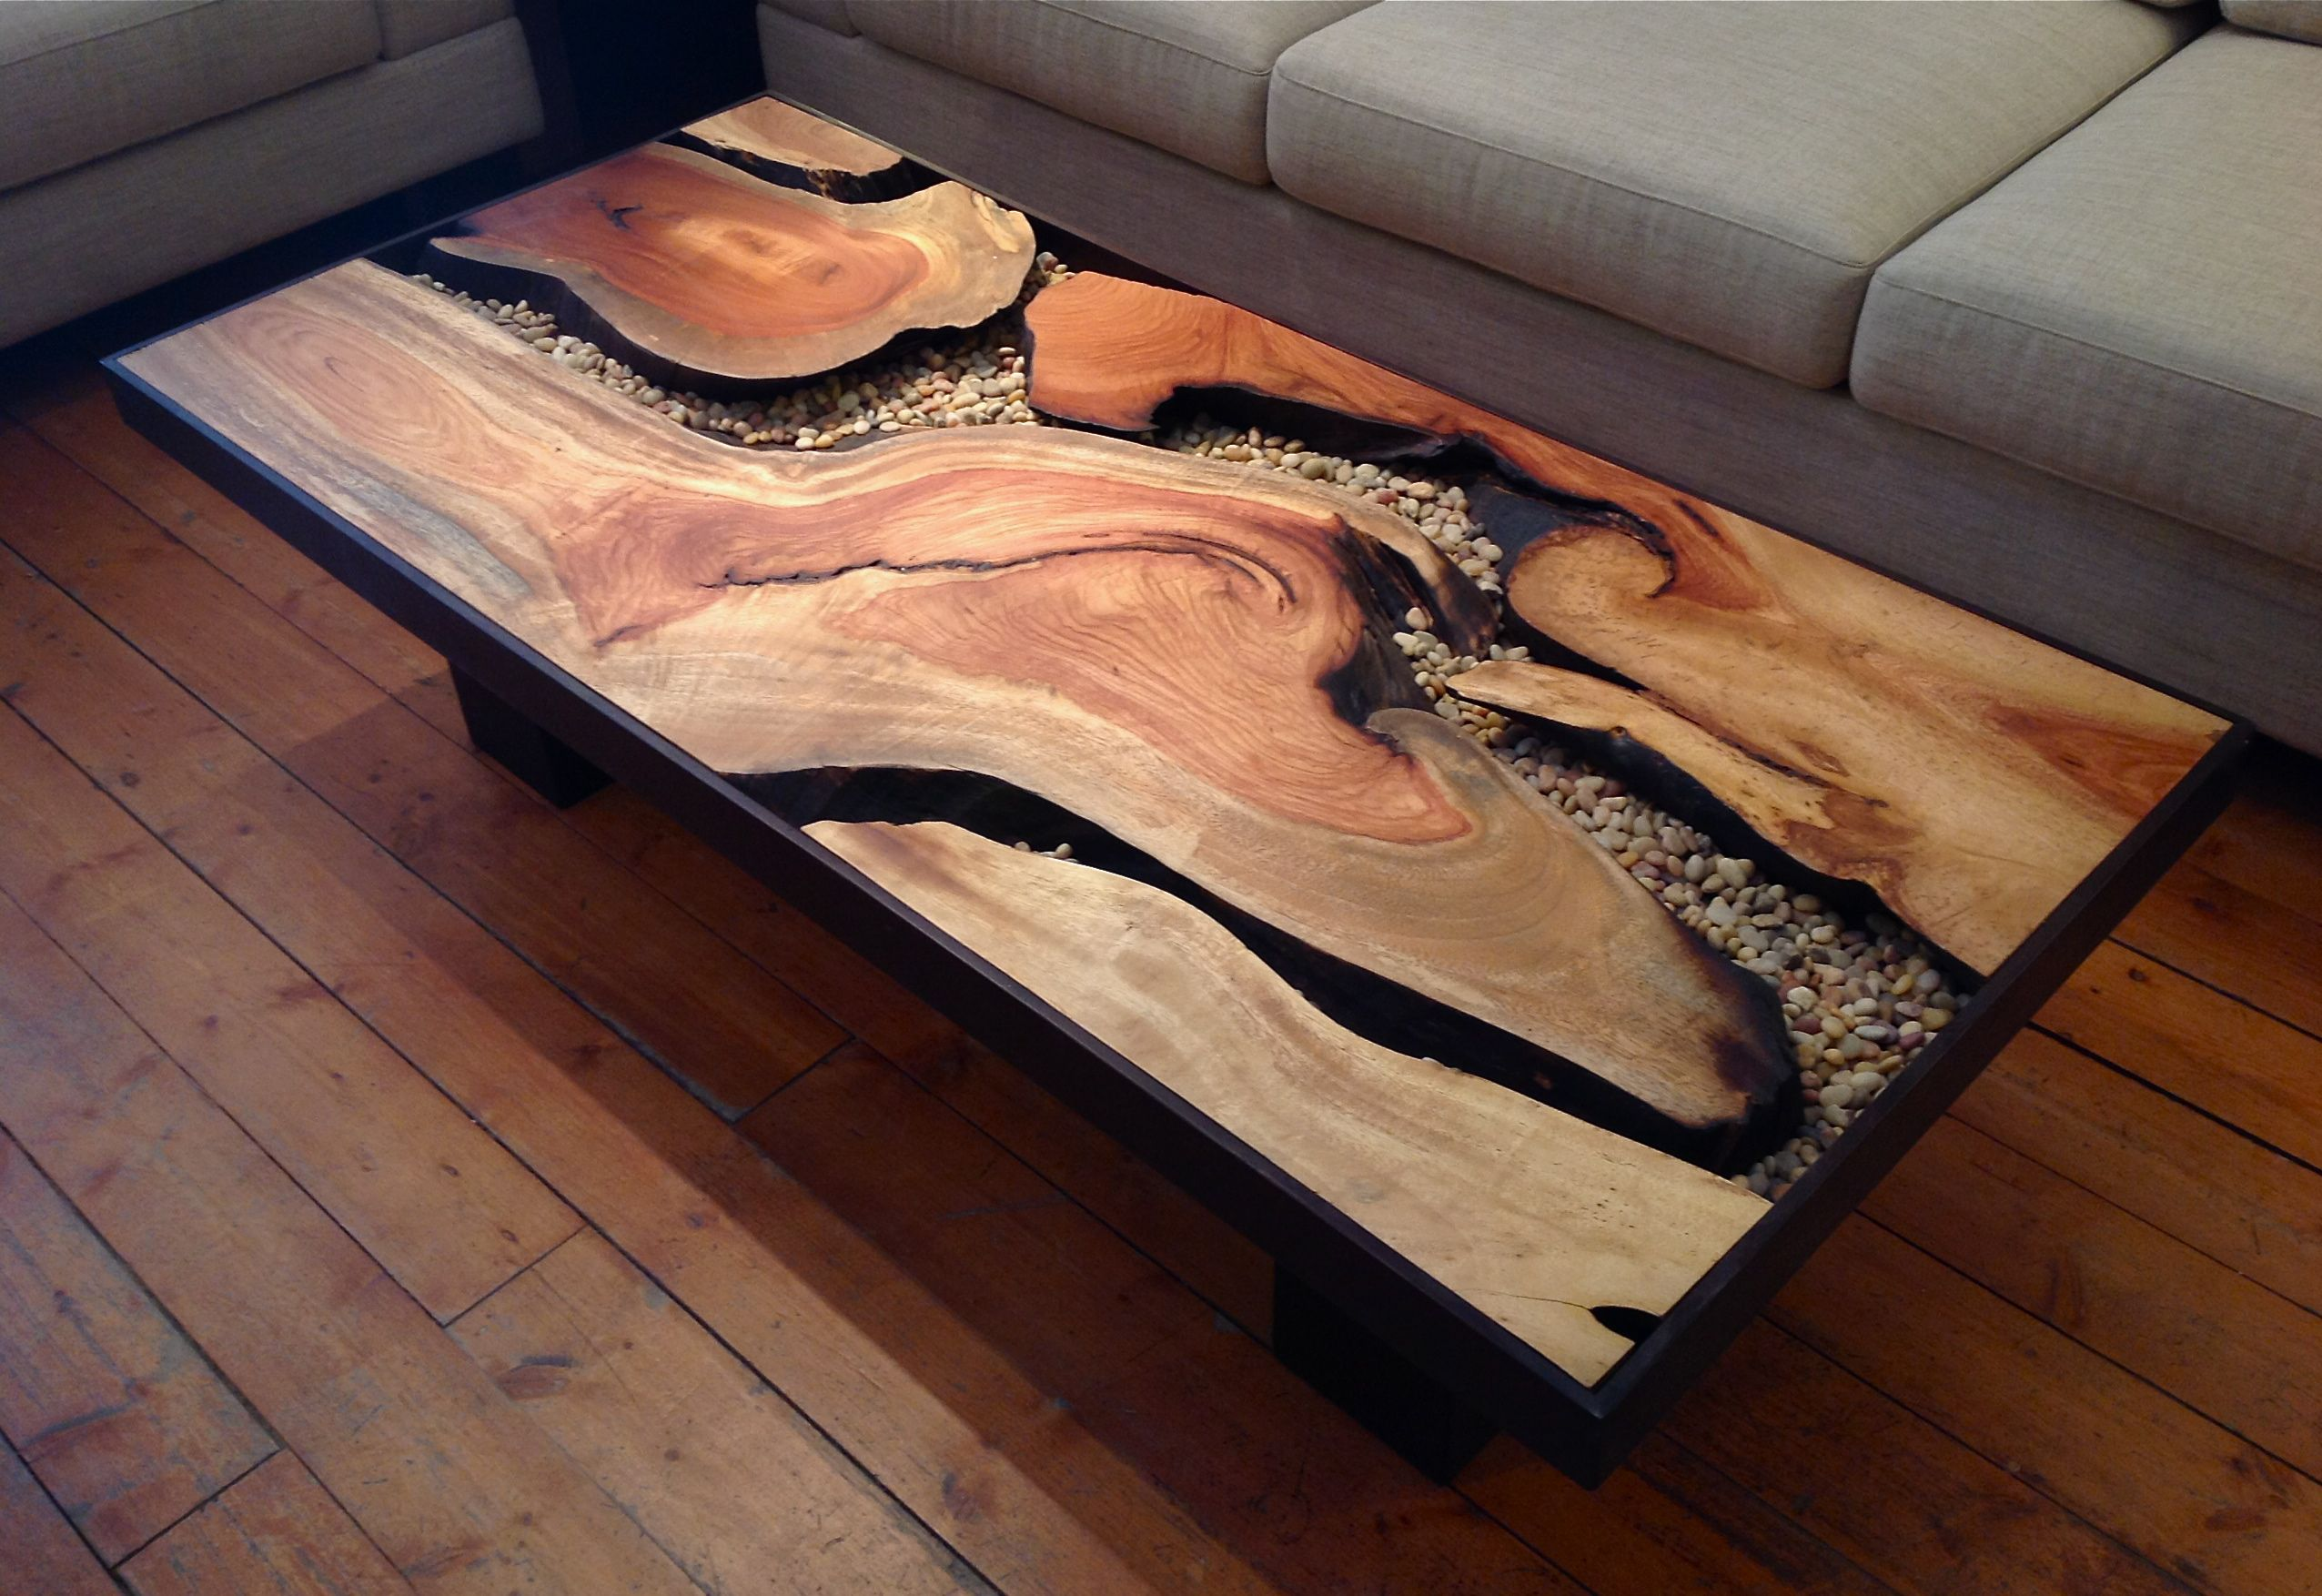 Tree Root Coffee Table Sequoia Santa Fe Sequoia Santa Fe Pinterest Santa Fe Fe And Coffee